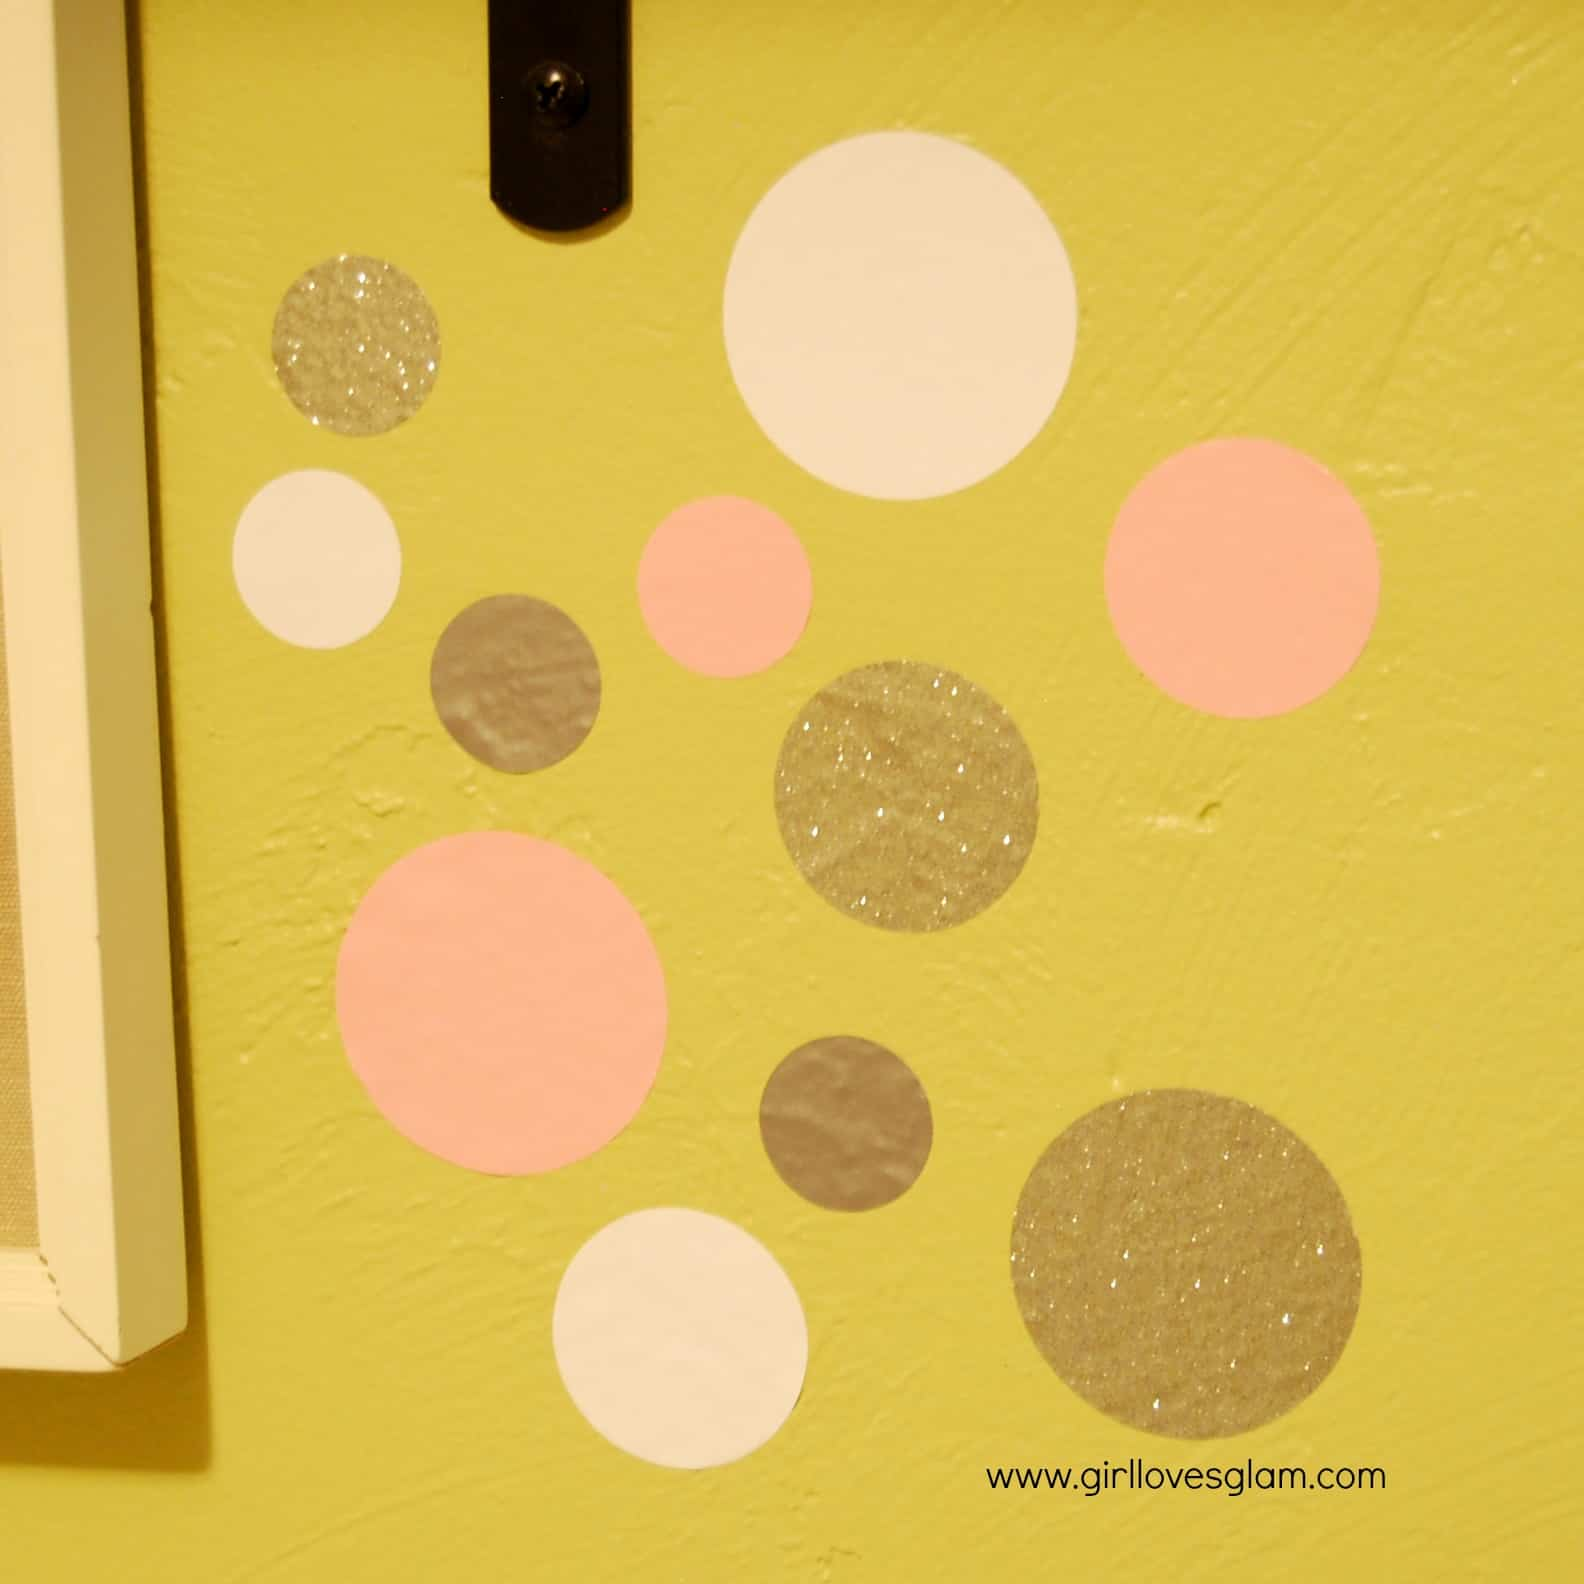 Confetti Polka Dot Vinyl Wall Accents - Girl Loves Glam